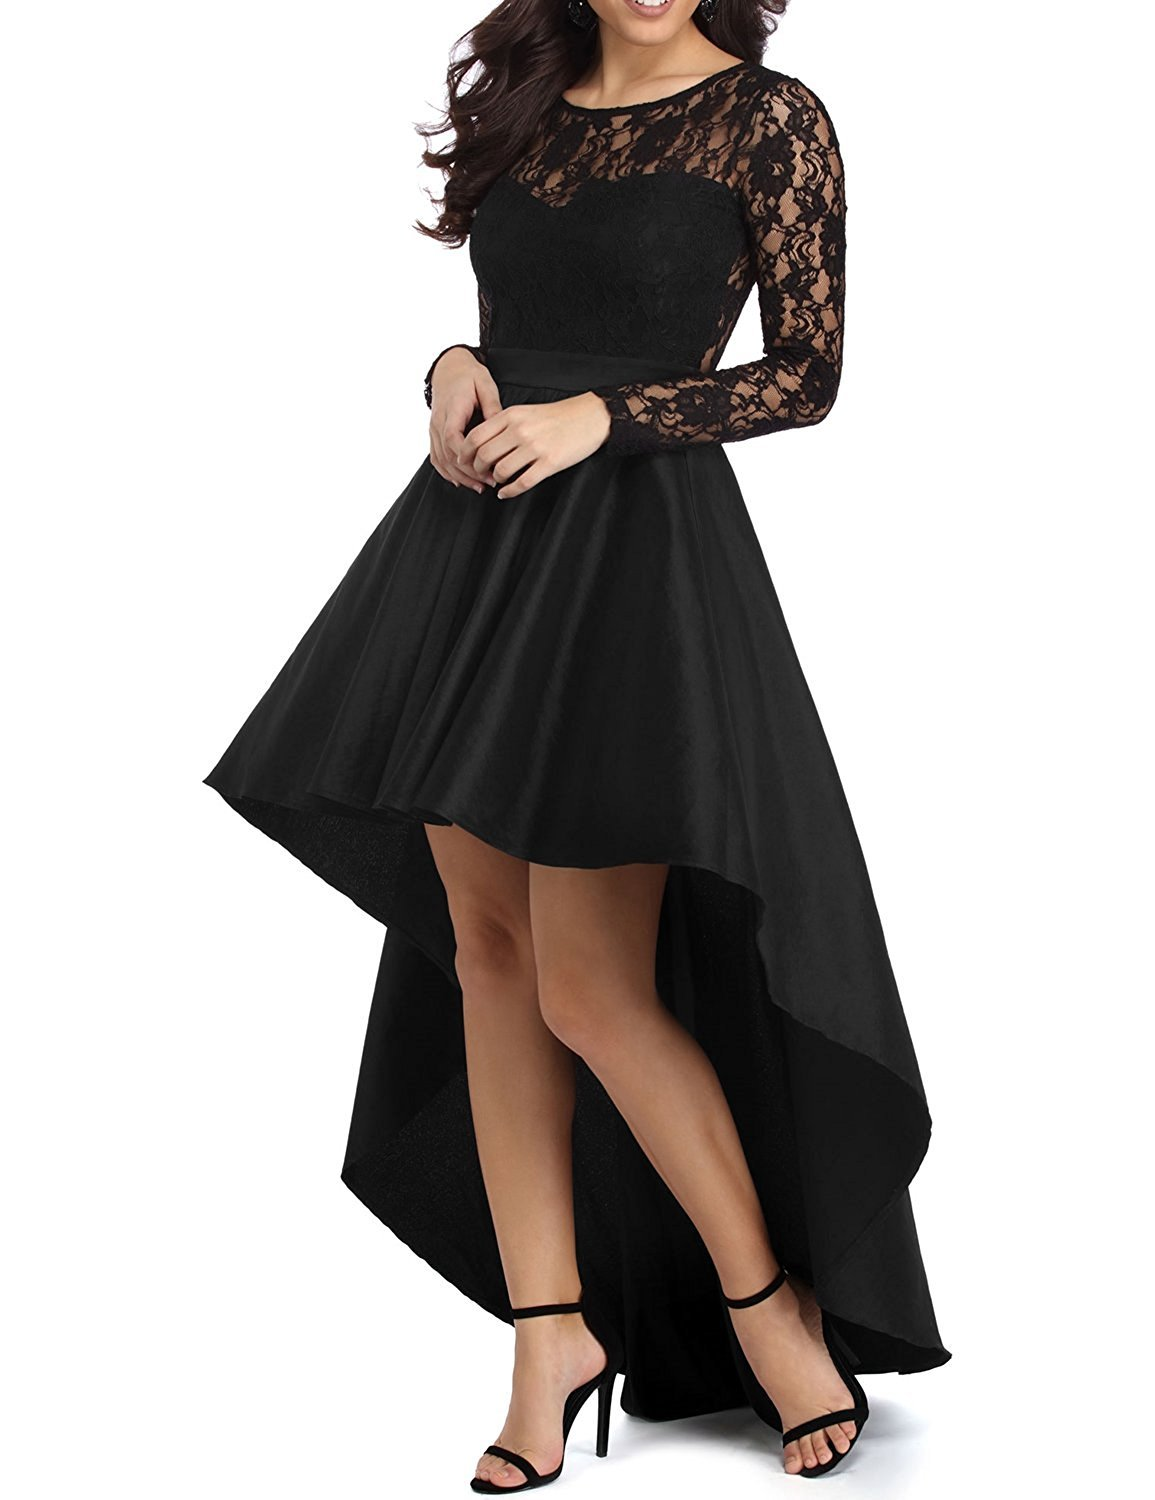 Women's High Low Long Sleeve Black Prom Dress Lace Cocktail Dresses Party Gowns - $116.00